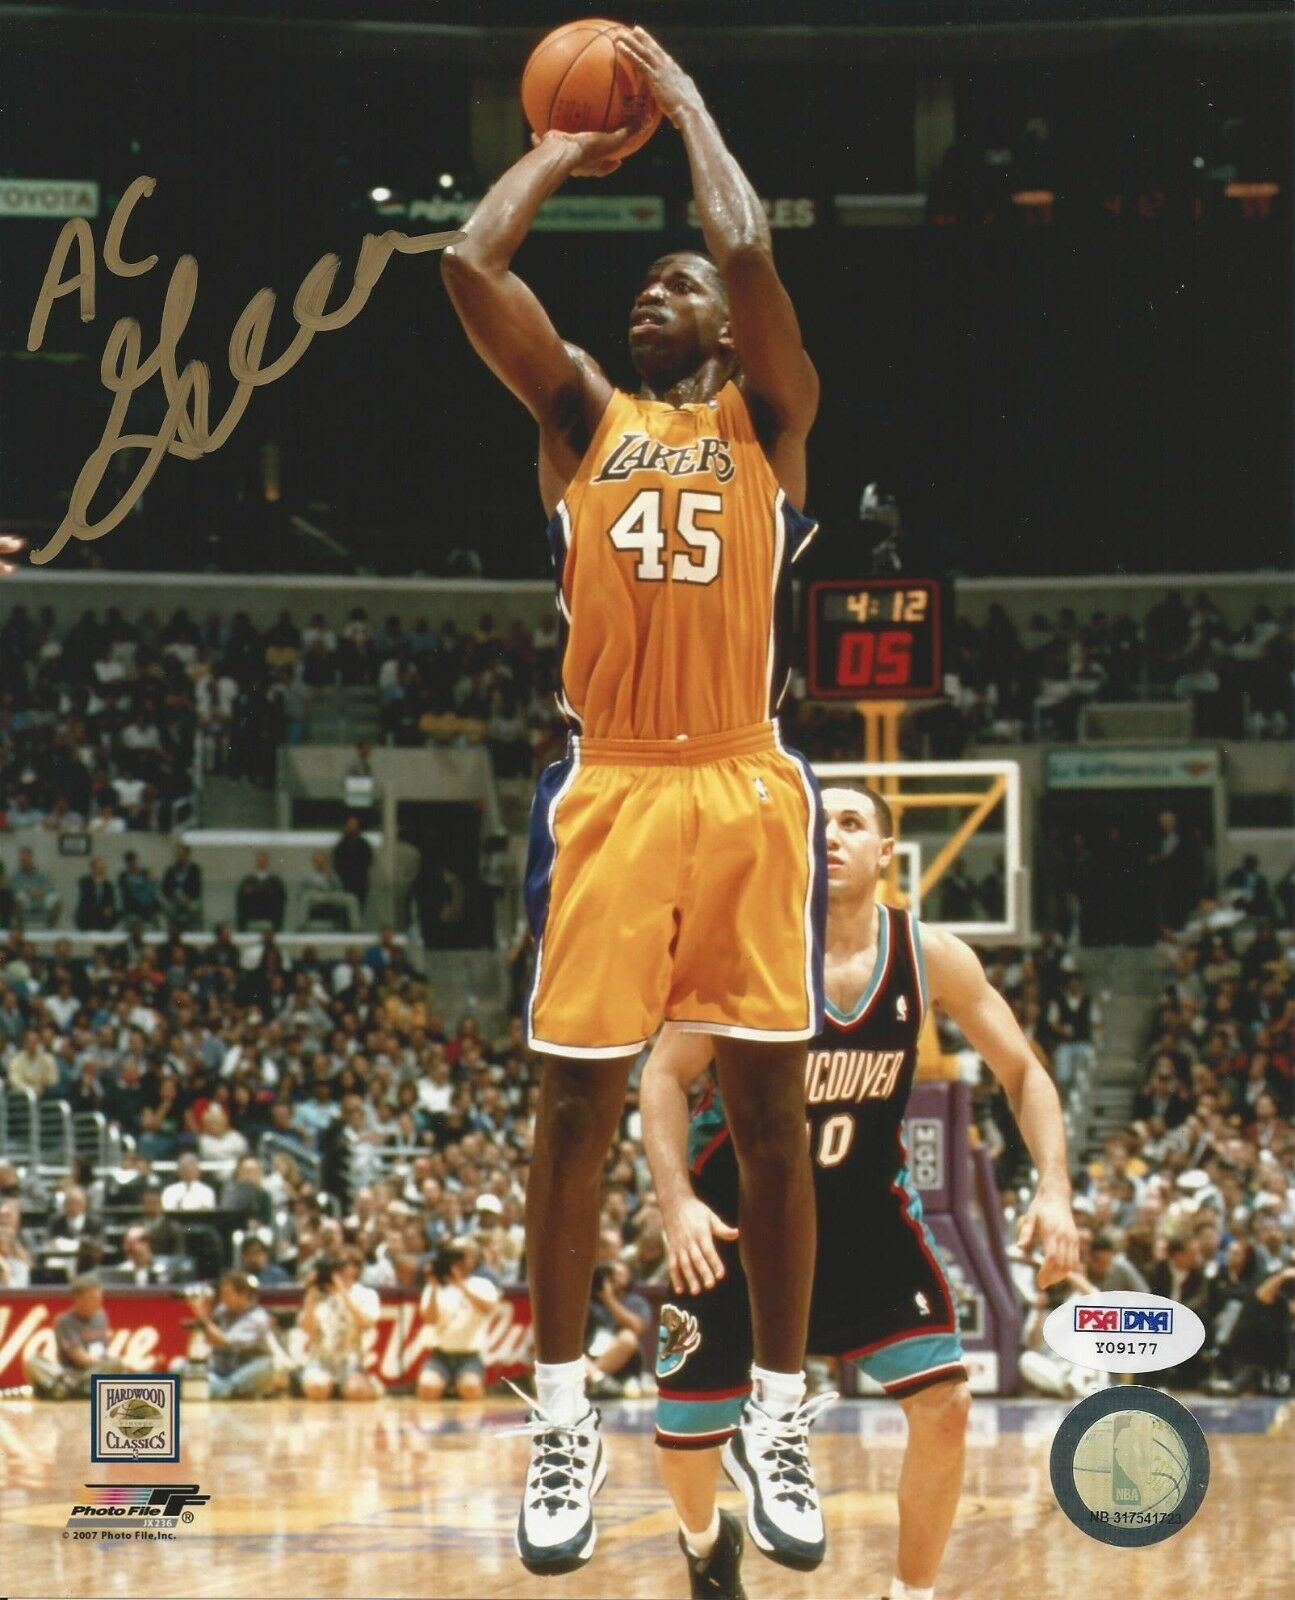 Ac Green LA Lakers Signed 8x10 - PSA/DNA # Y09177